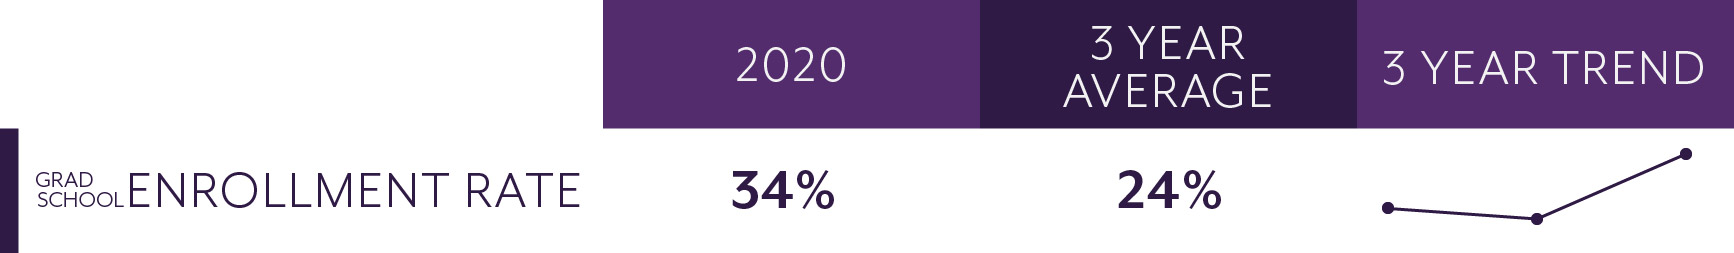 Grad school enrollment rate: 2020=34%, 3 year average=24%